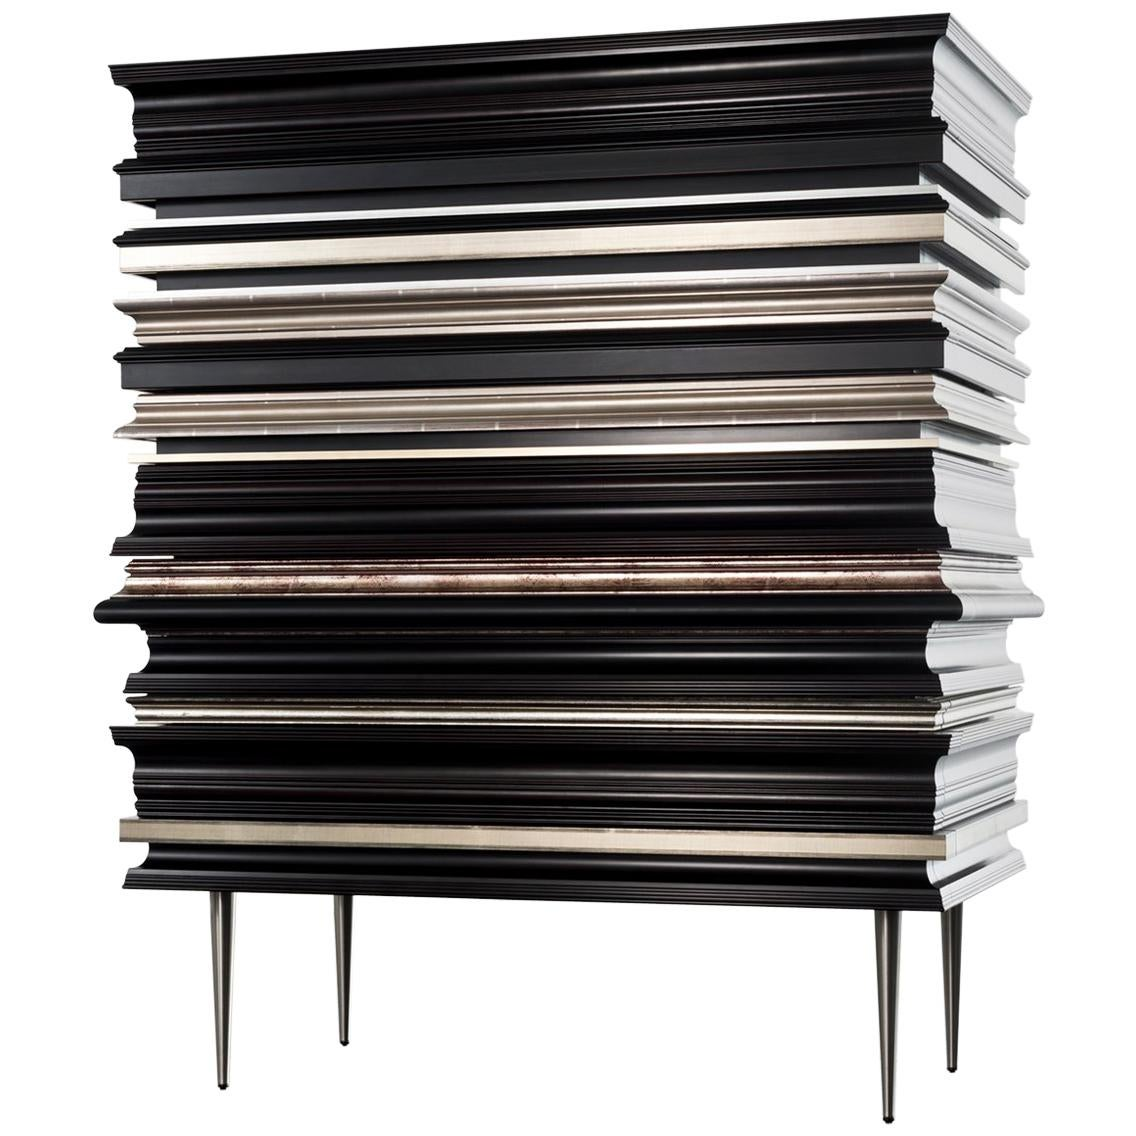 Contemporary Crafted Silver and Darkened Wood Molding Dresser by Luis Pons